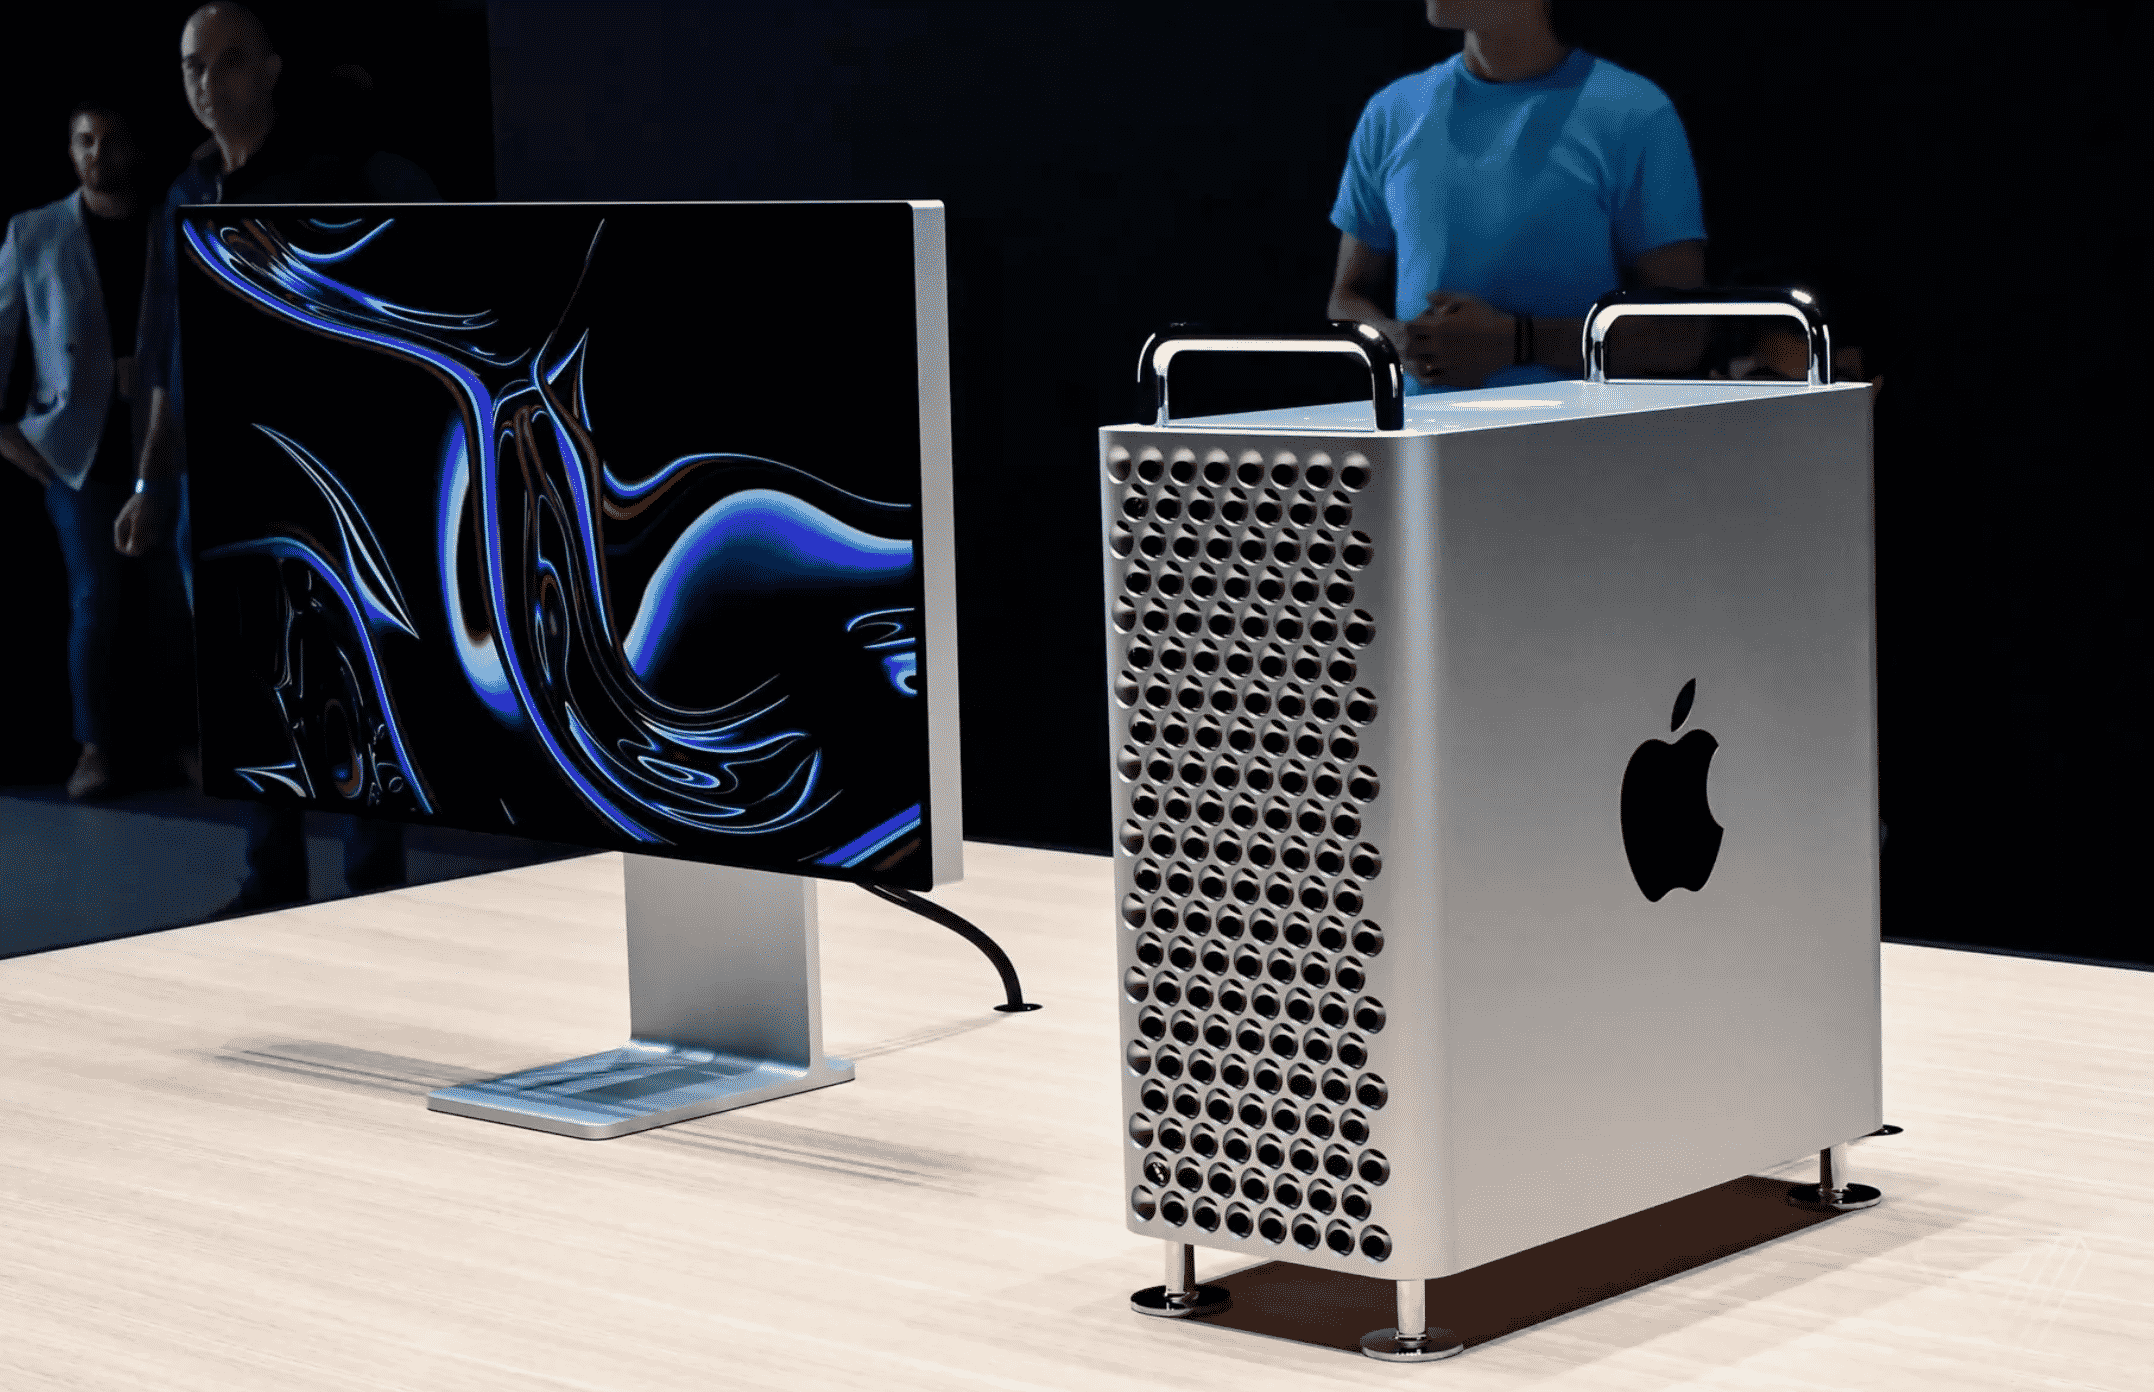 Mac Pro and Pro Display XDR Tech Overview Revealed